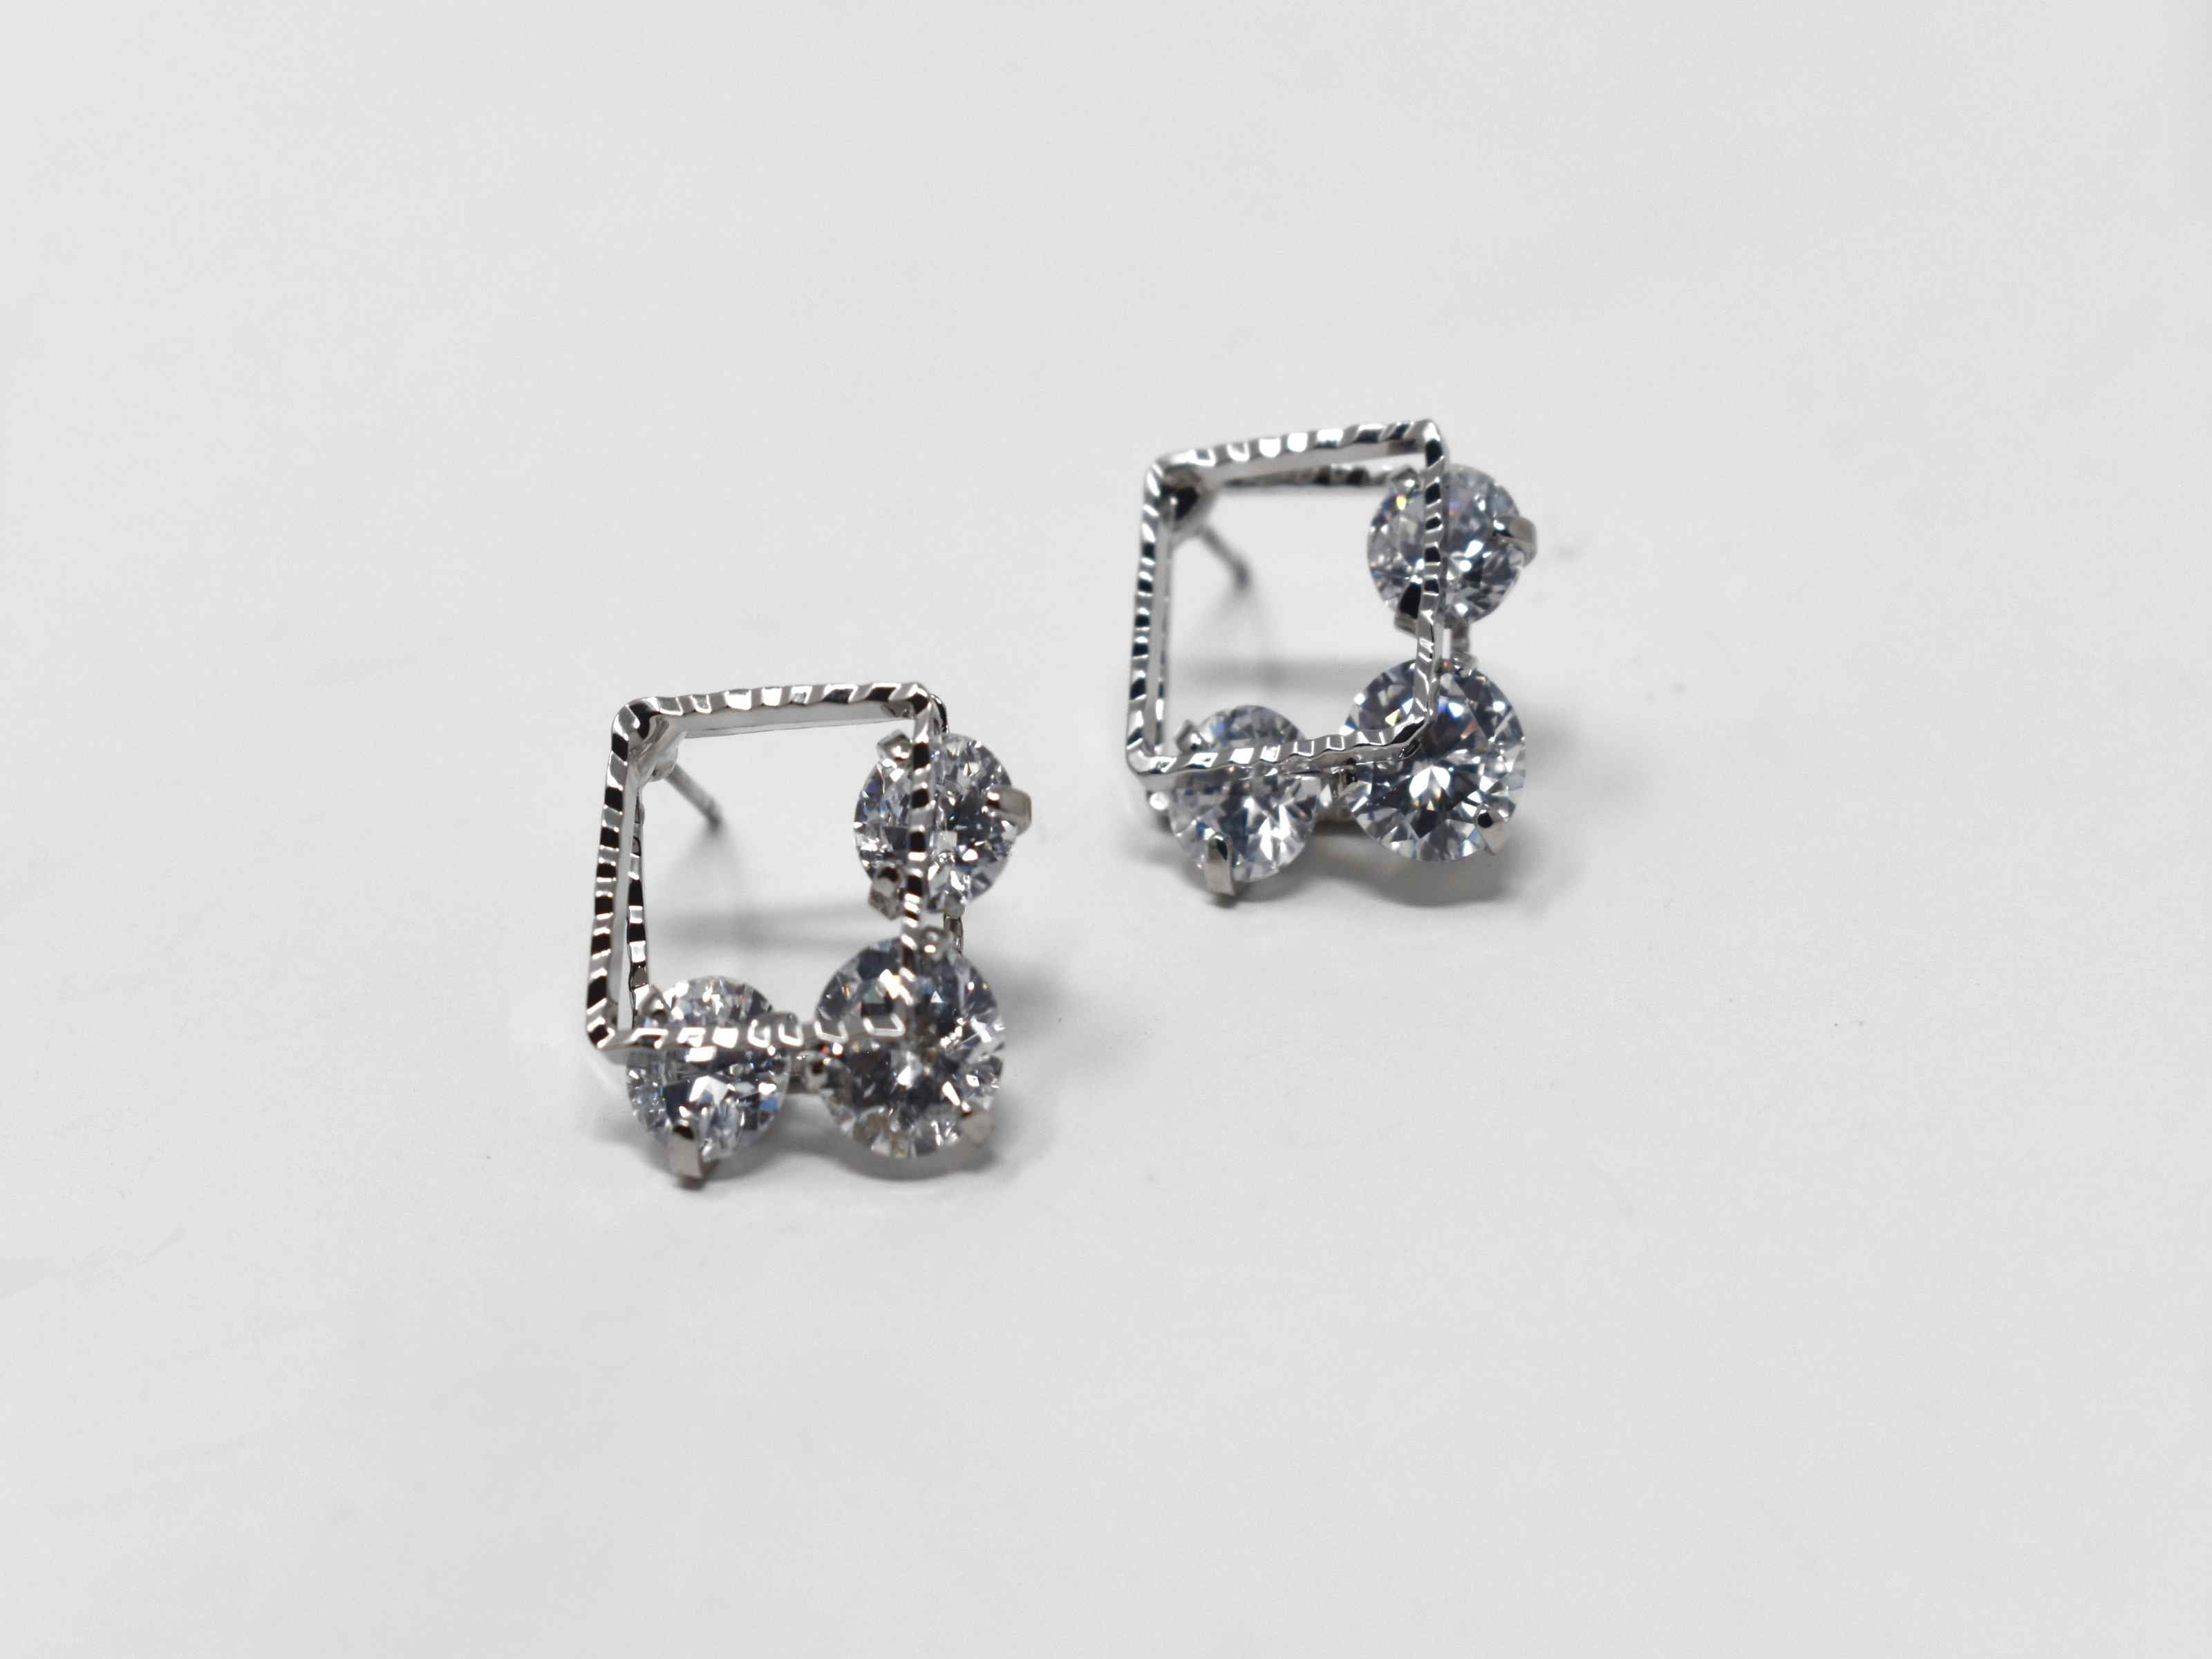 Our beautifully crafted daniella earrings are a must have essential. These silver double square earrings are adorned with stones running between both squares. It is 3/4 of an inch in length with a push back clasp.